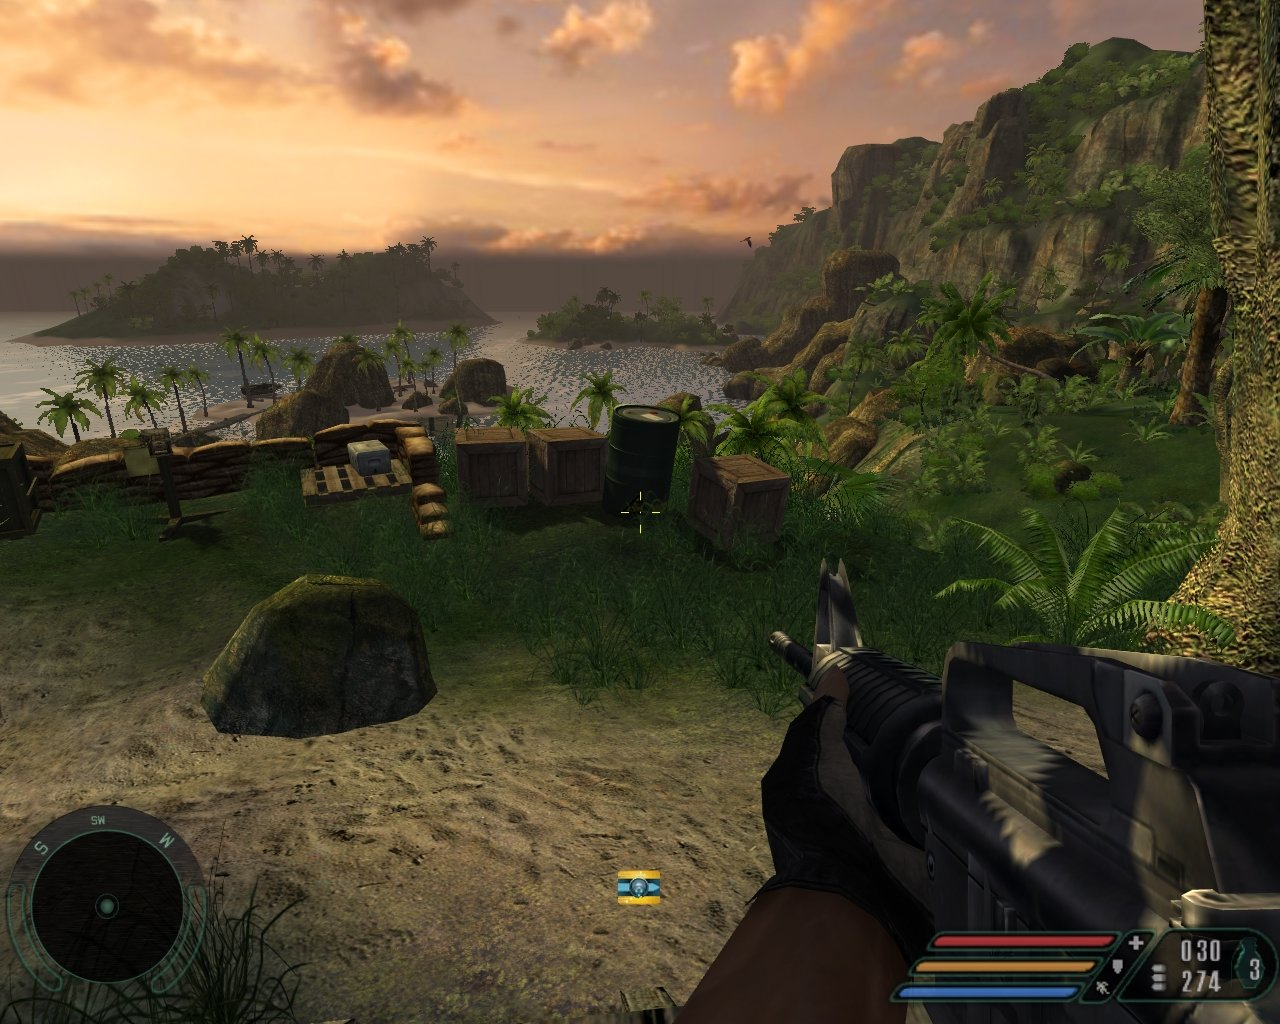 Far Cry 1.2 NV40 1280x1024 4xAA/8xAF